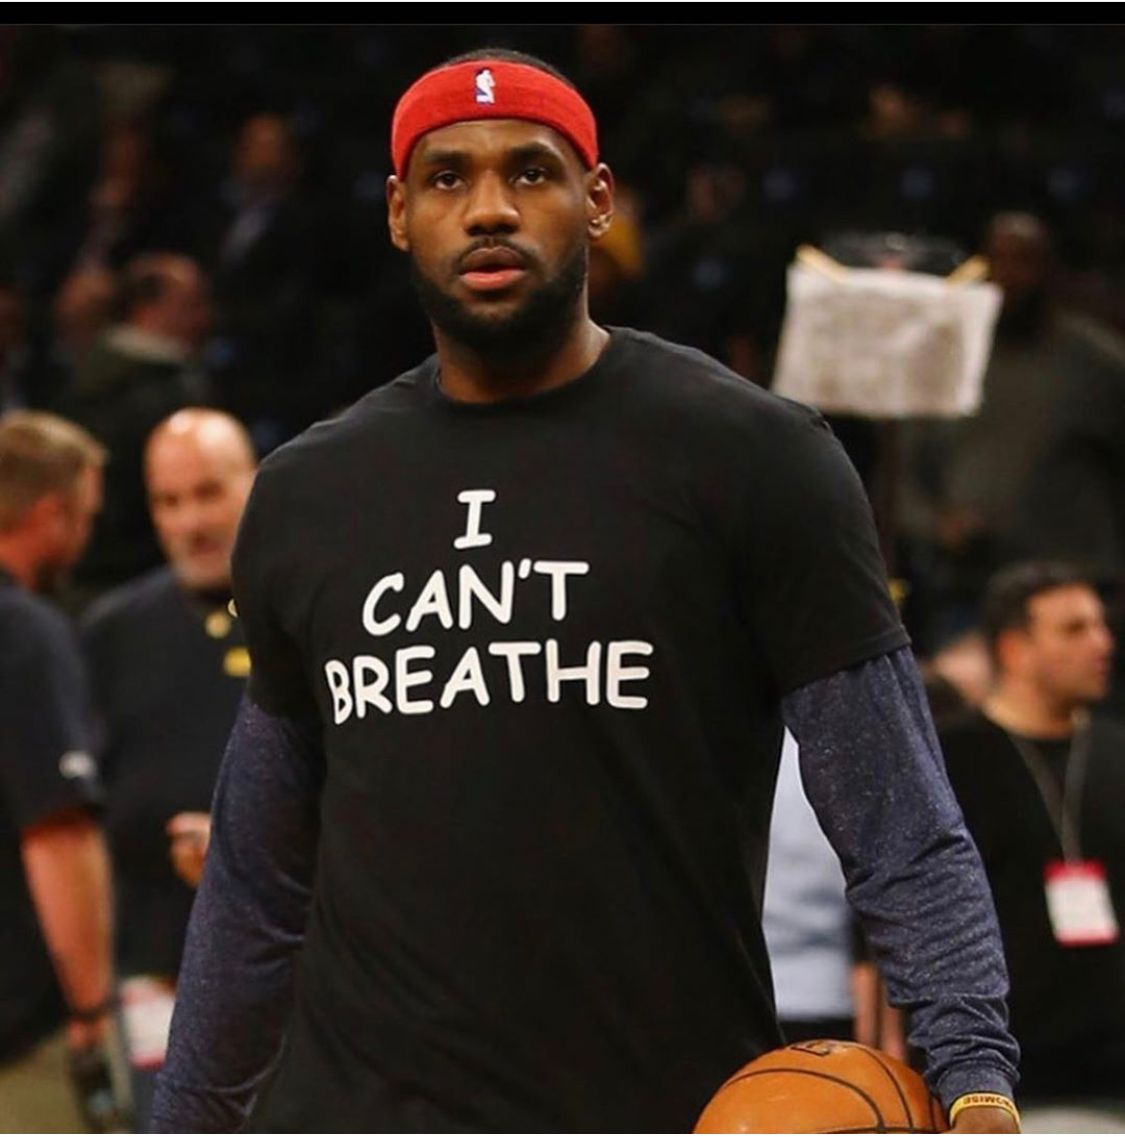 A photo showing LeBron James wearing a black shirt on a long sleeve sweat shirt and a basketball on his left hand.